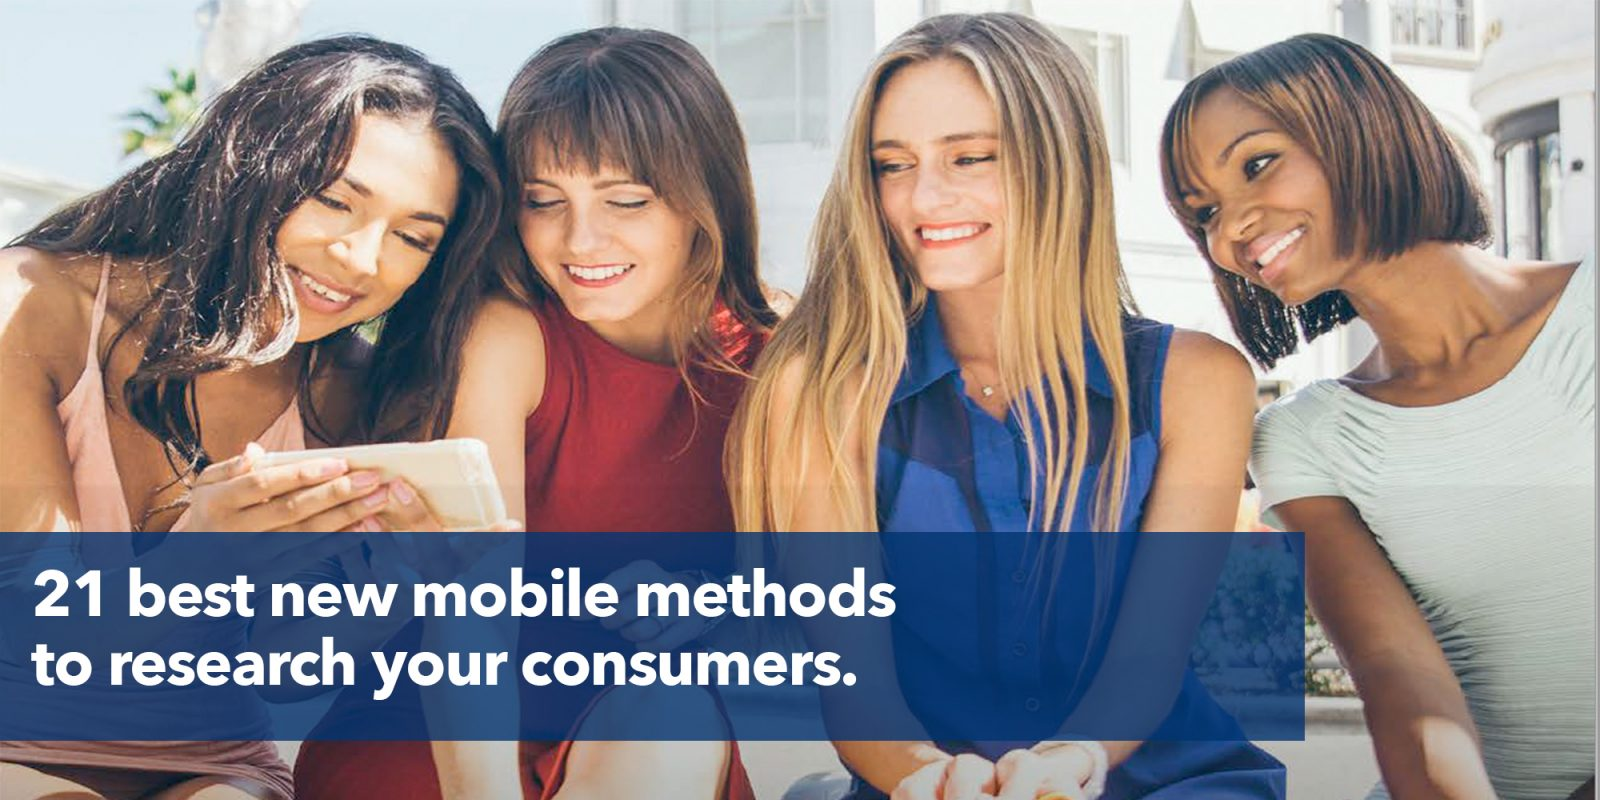 21 best new mobile methods to research your customers.